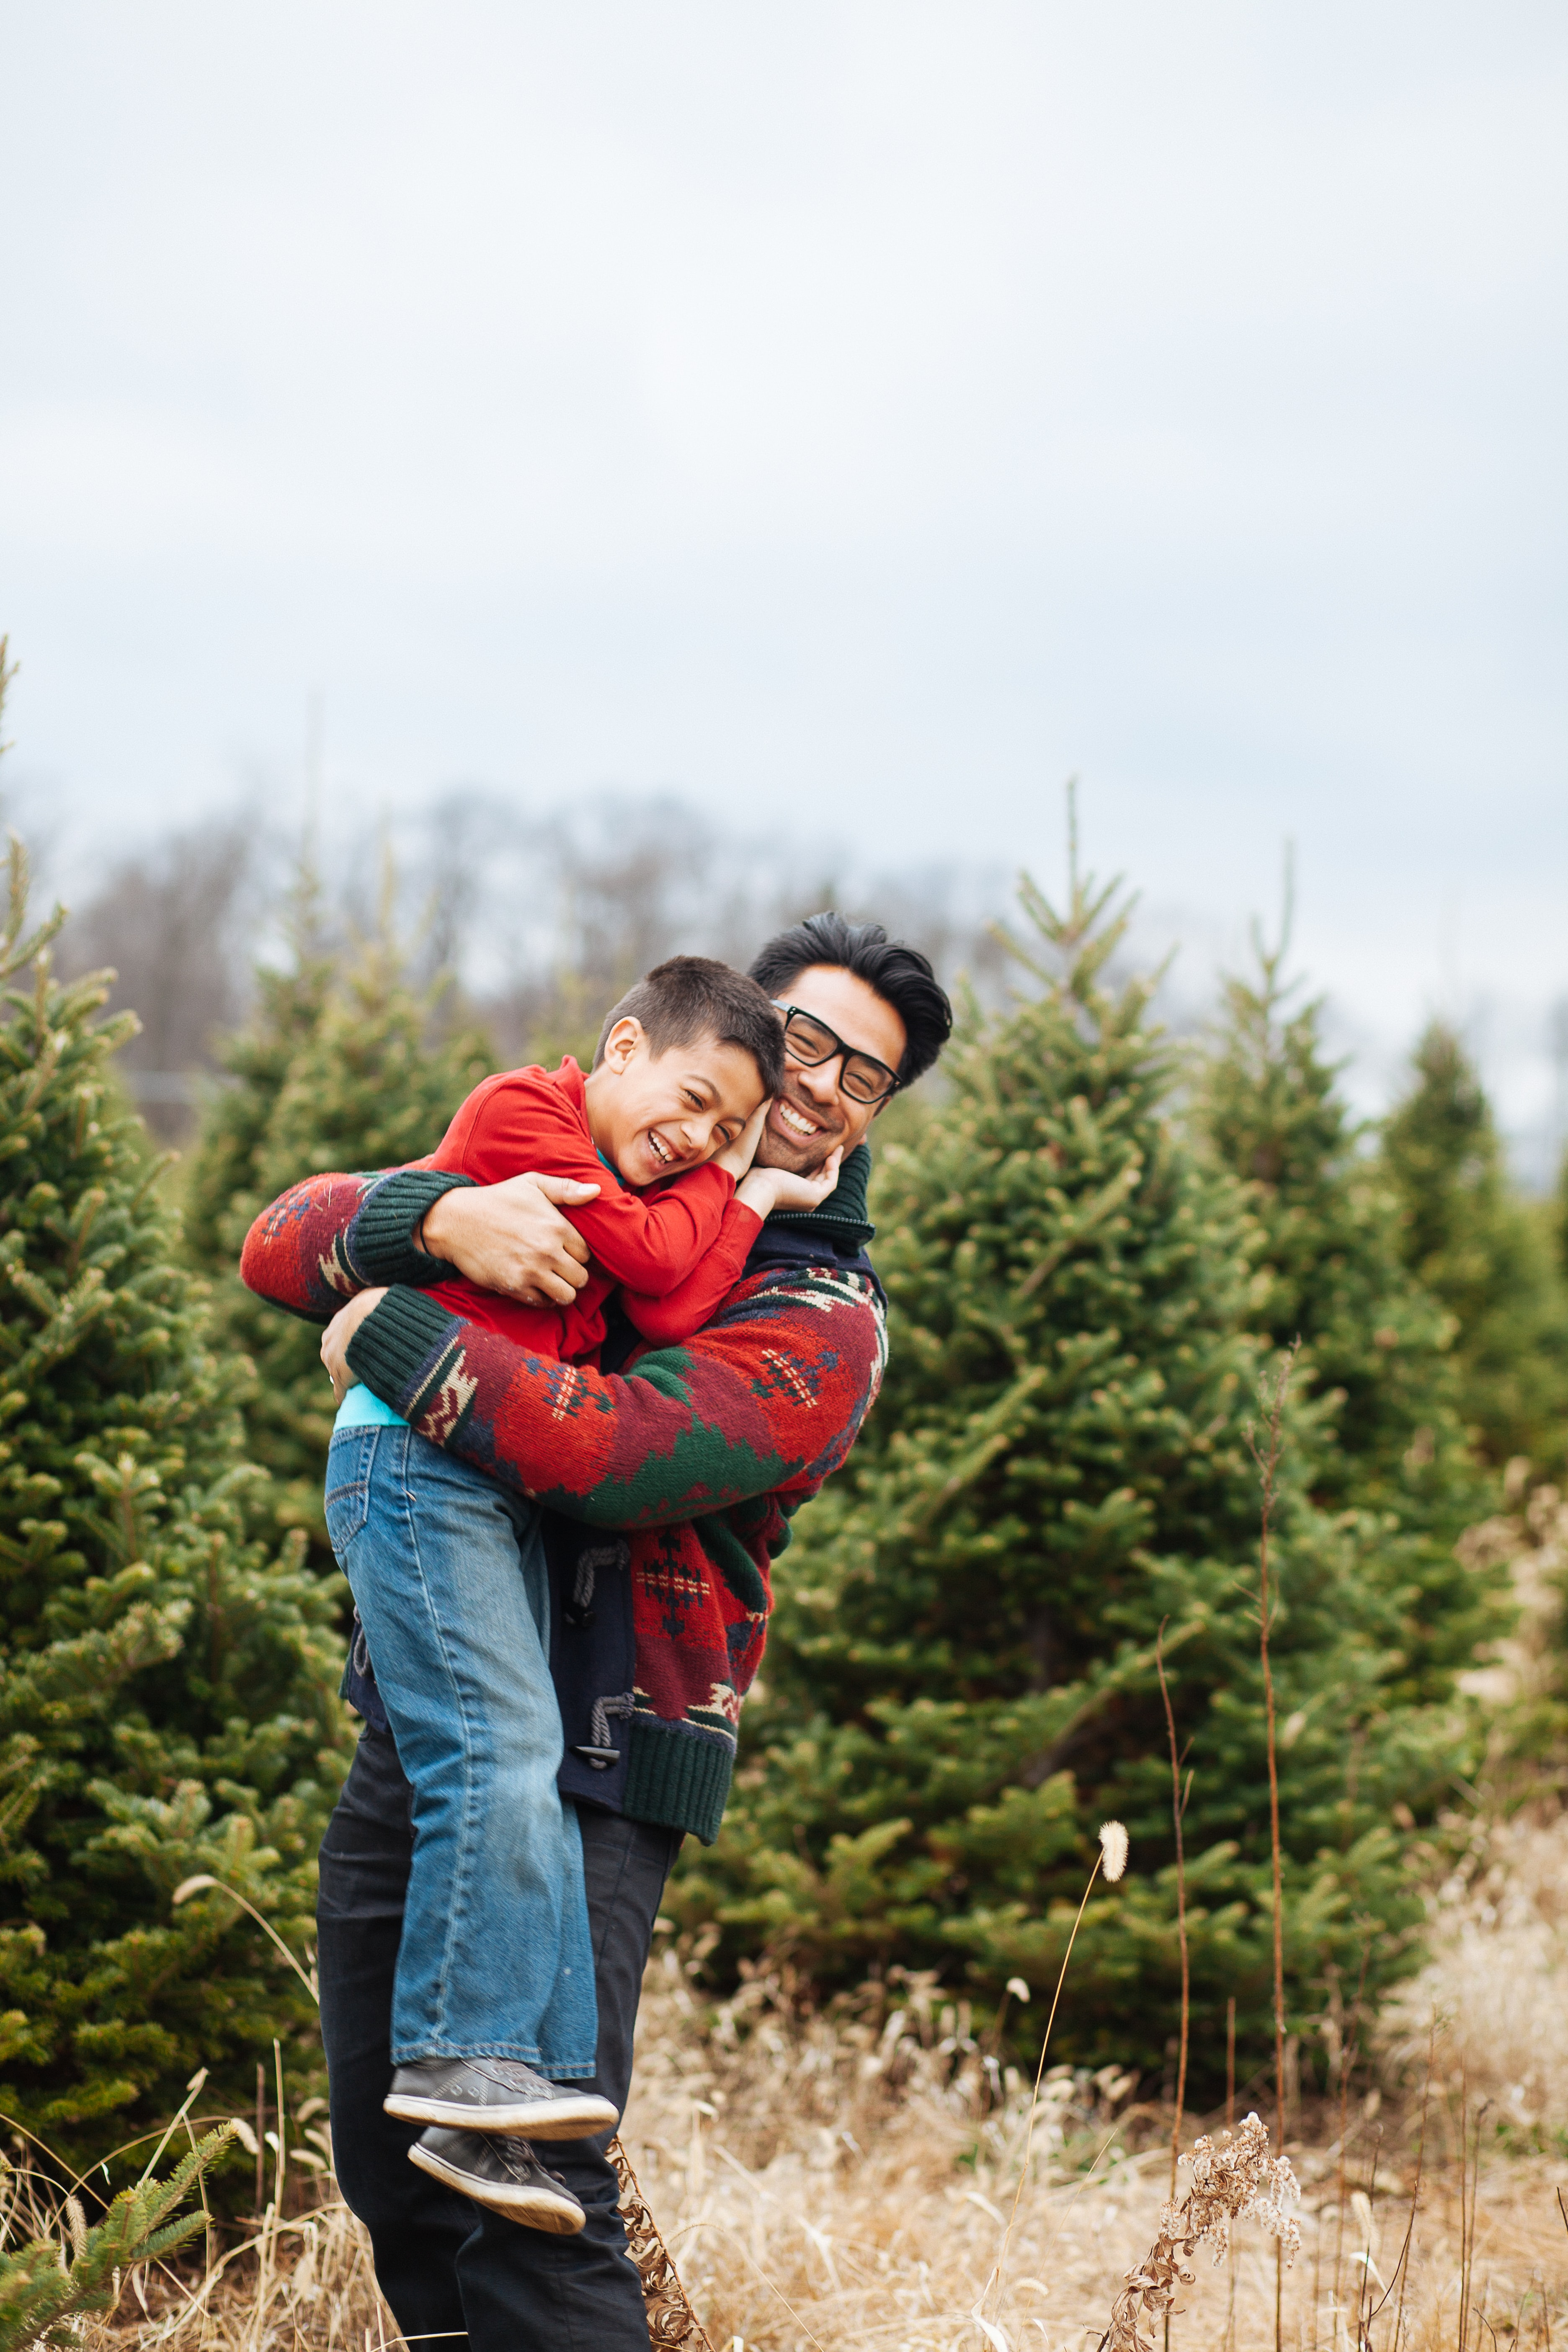 Christmas Tree Farm Pictures Download Free Images On Unsplash